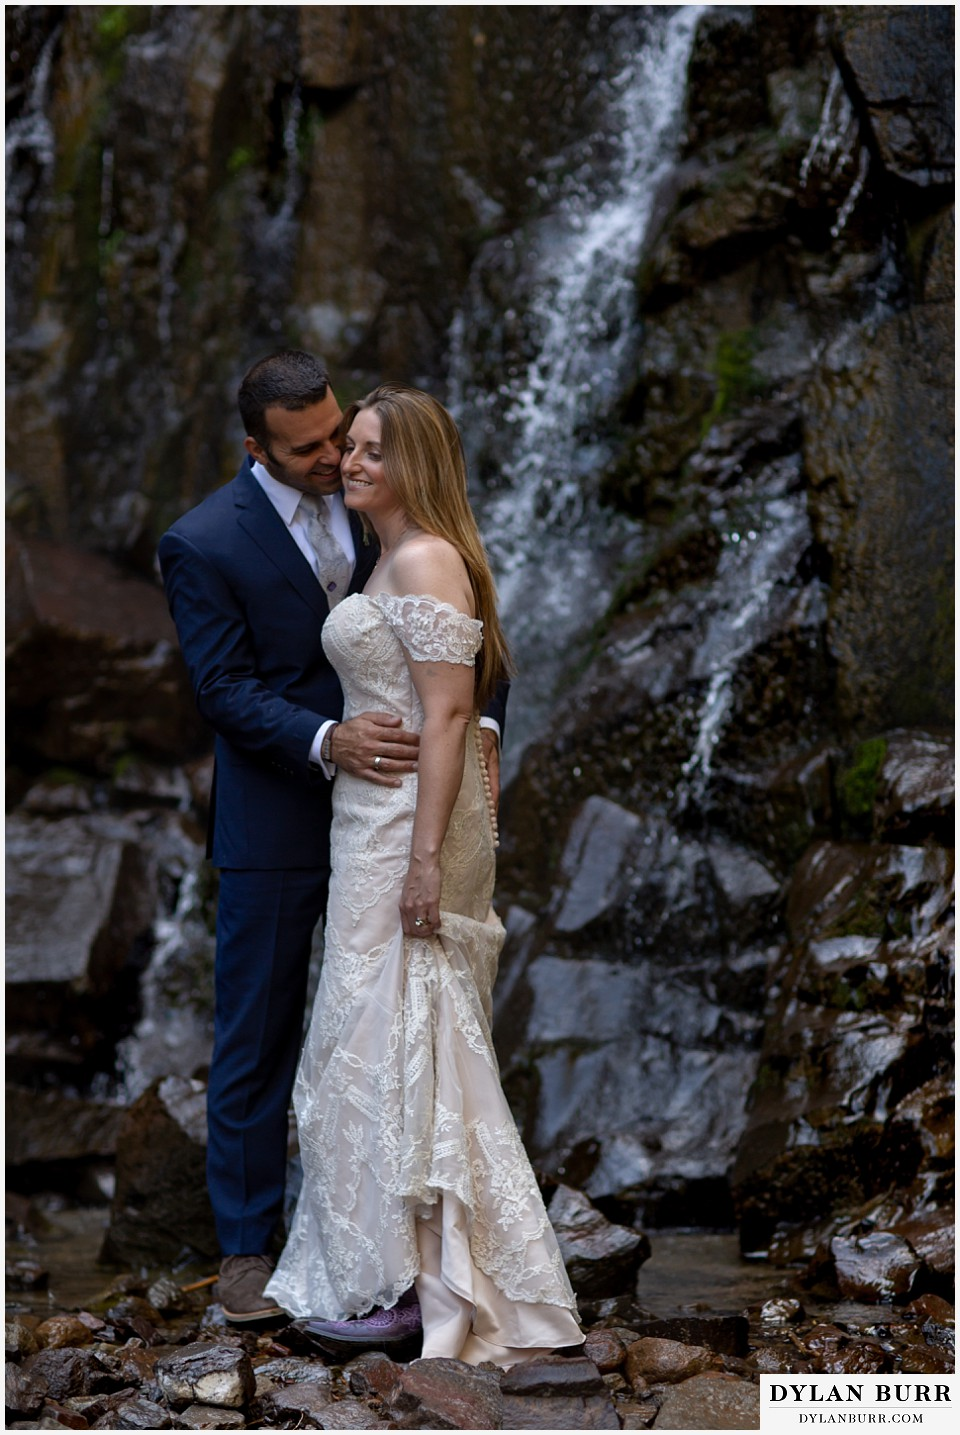 uncompahgre national forest colorado elopement wedding adventure bride and groom kissing at waterfall